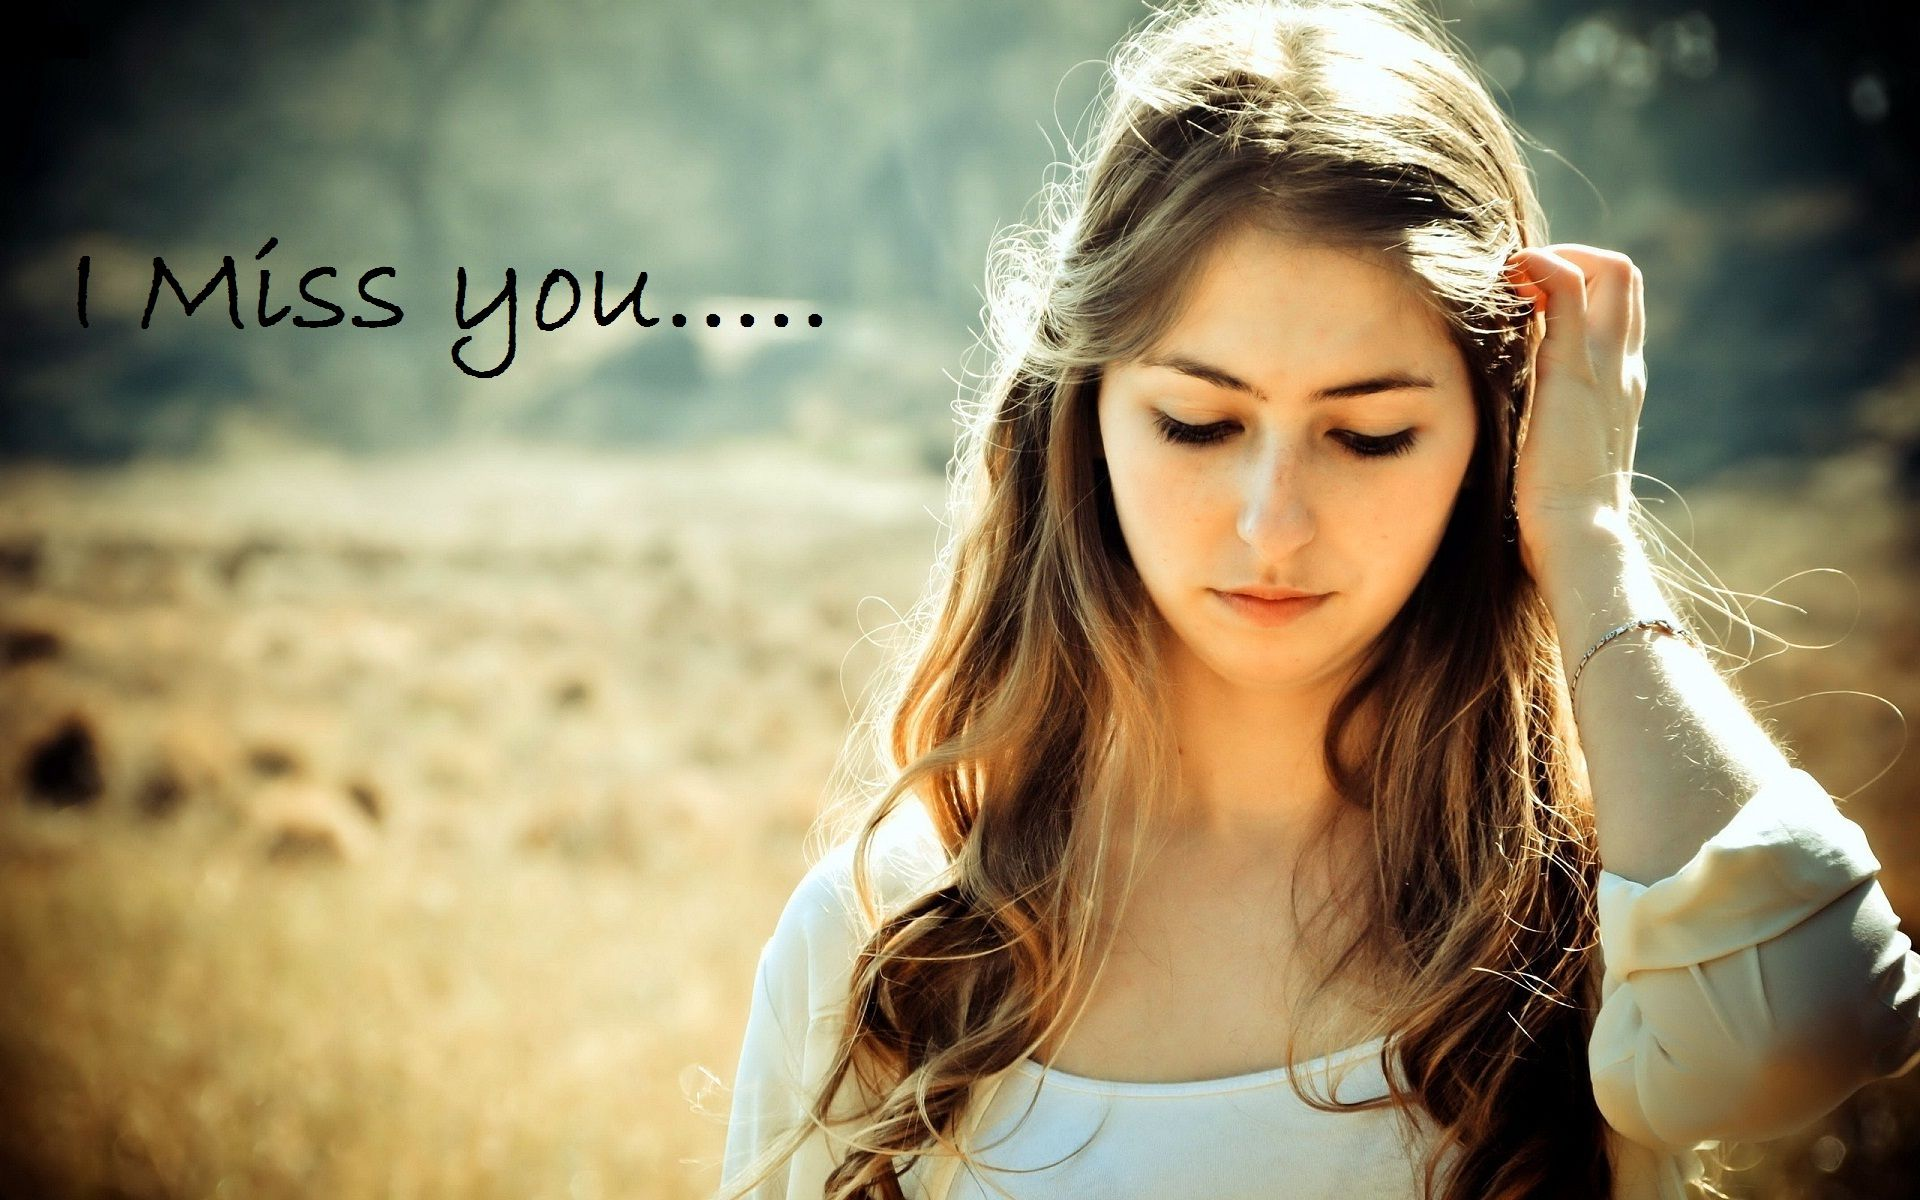 Wallpaper download i miss you - I Miss You Beautiful Hd Wallpapers Download Free